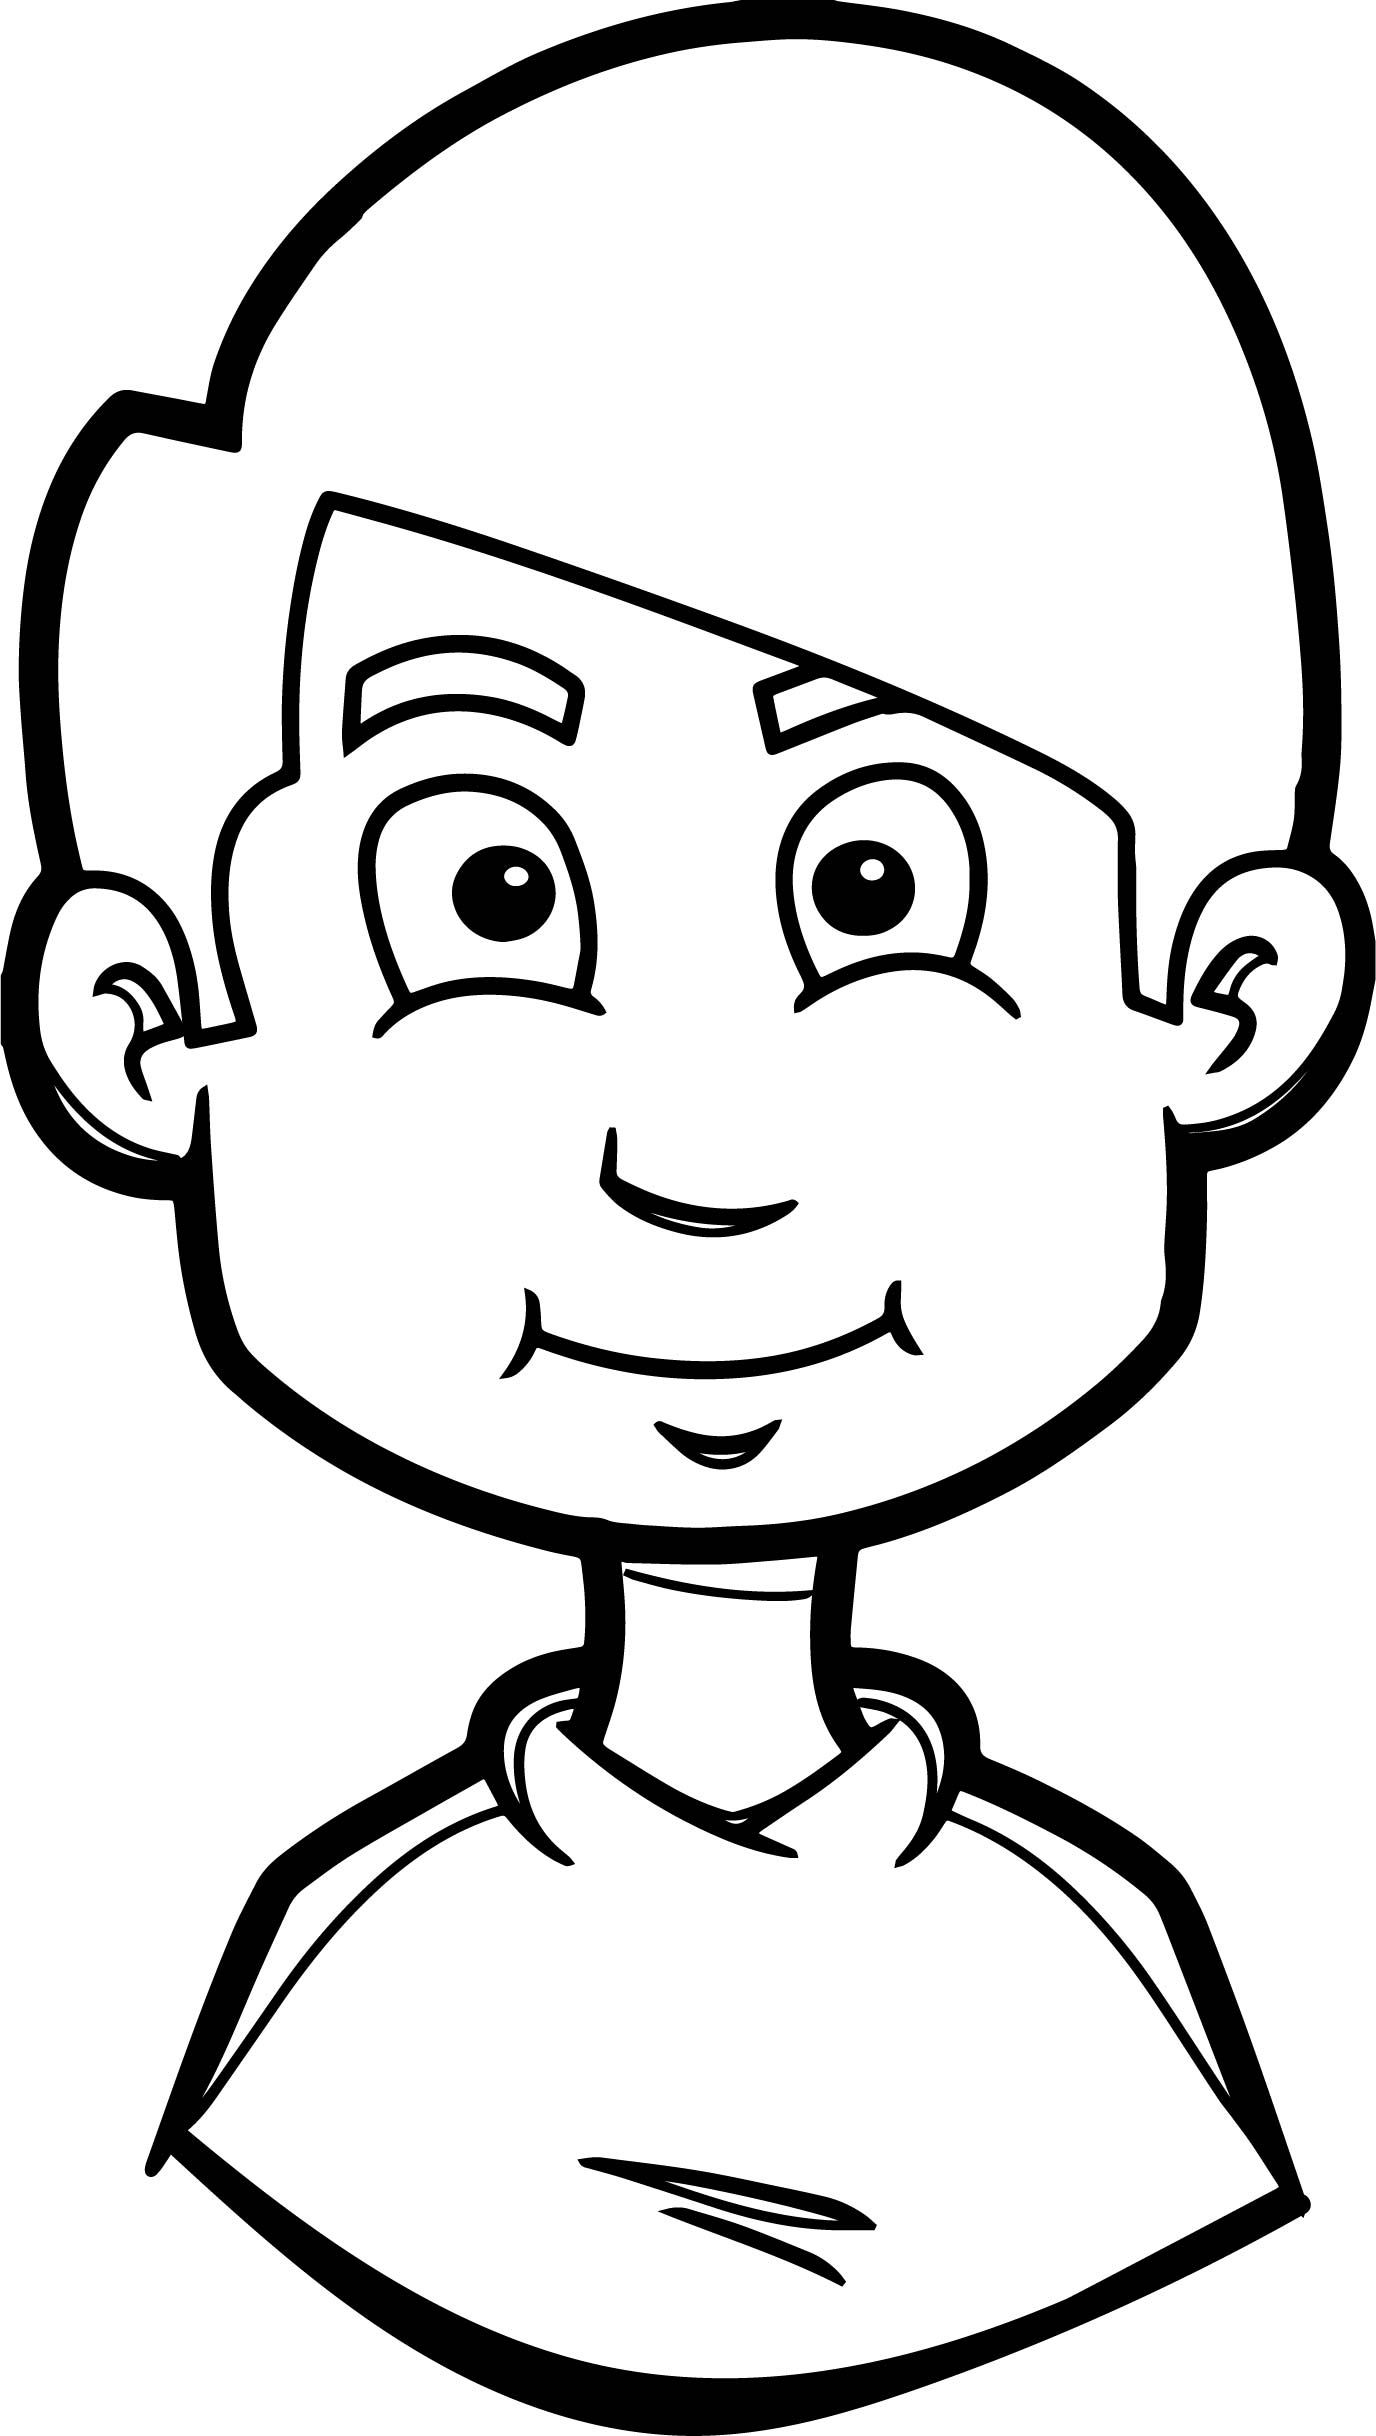 coloring book pages of childrens faces | Child Smiling Face Cartoon Coloring Page | Wecoloringpage.com